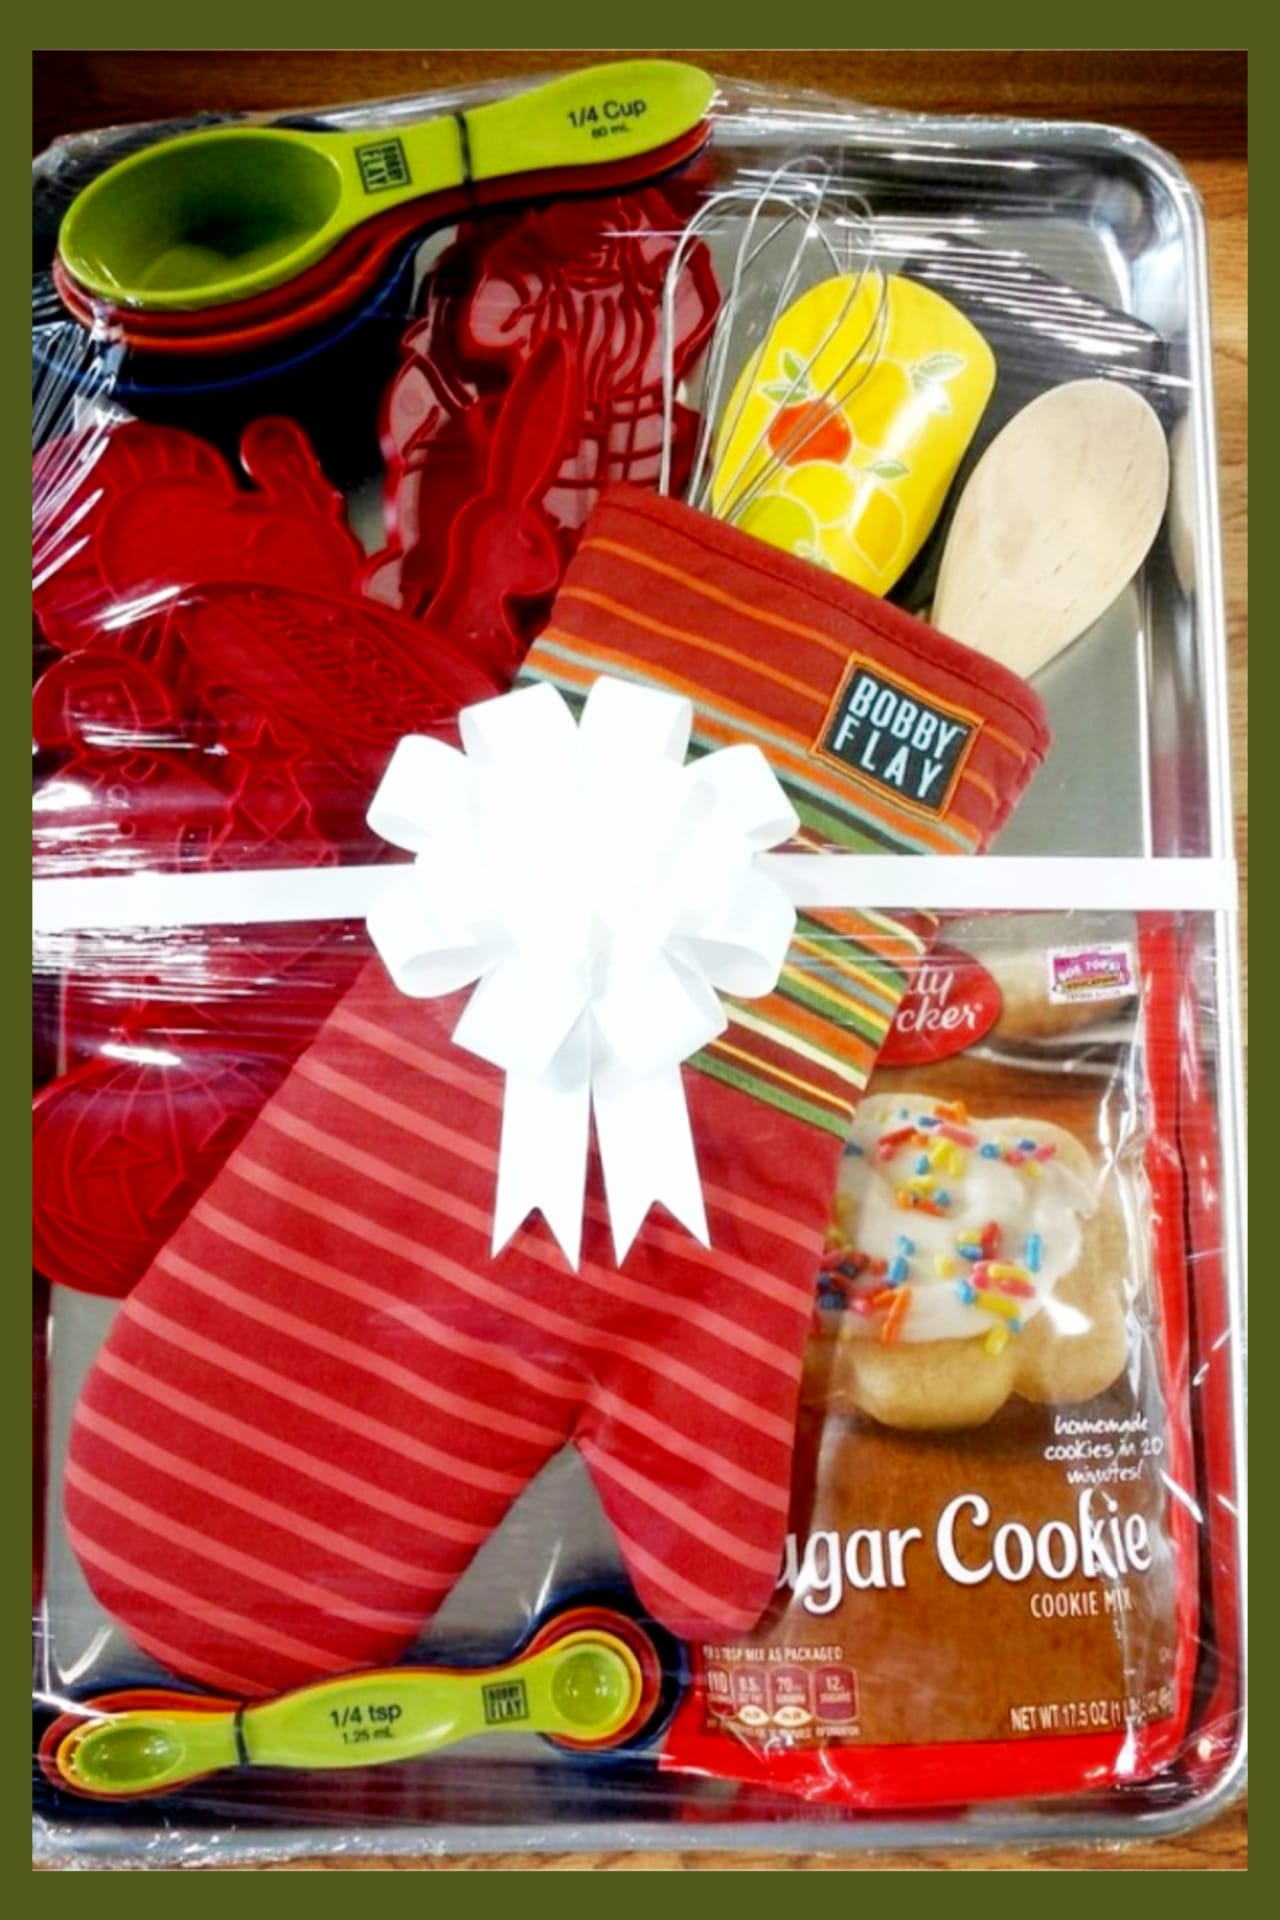 baking gift basket ideas - great and EASY housewarming gift basket ideas.  Raffle basket and silent auction gift basket ideas too